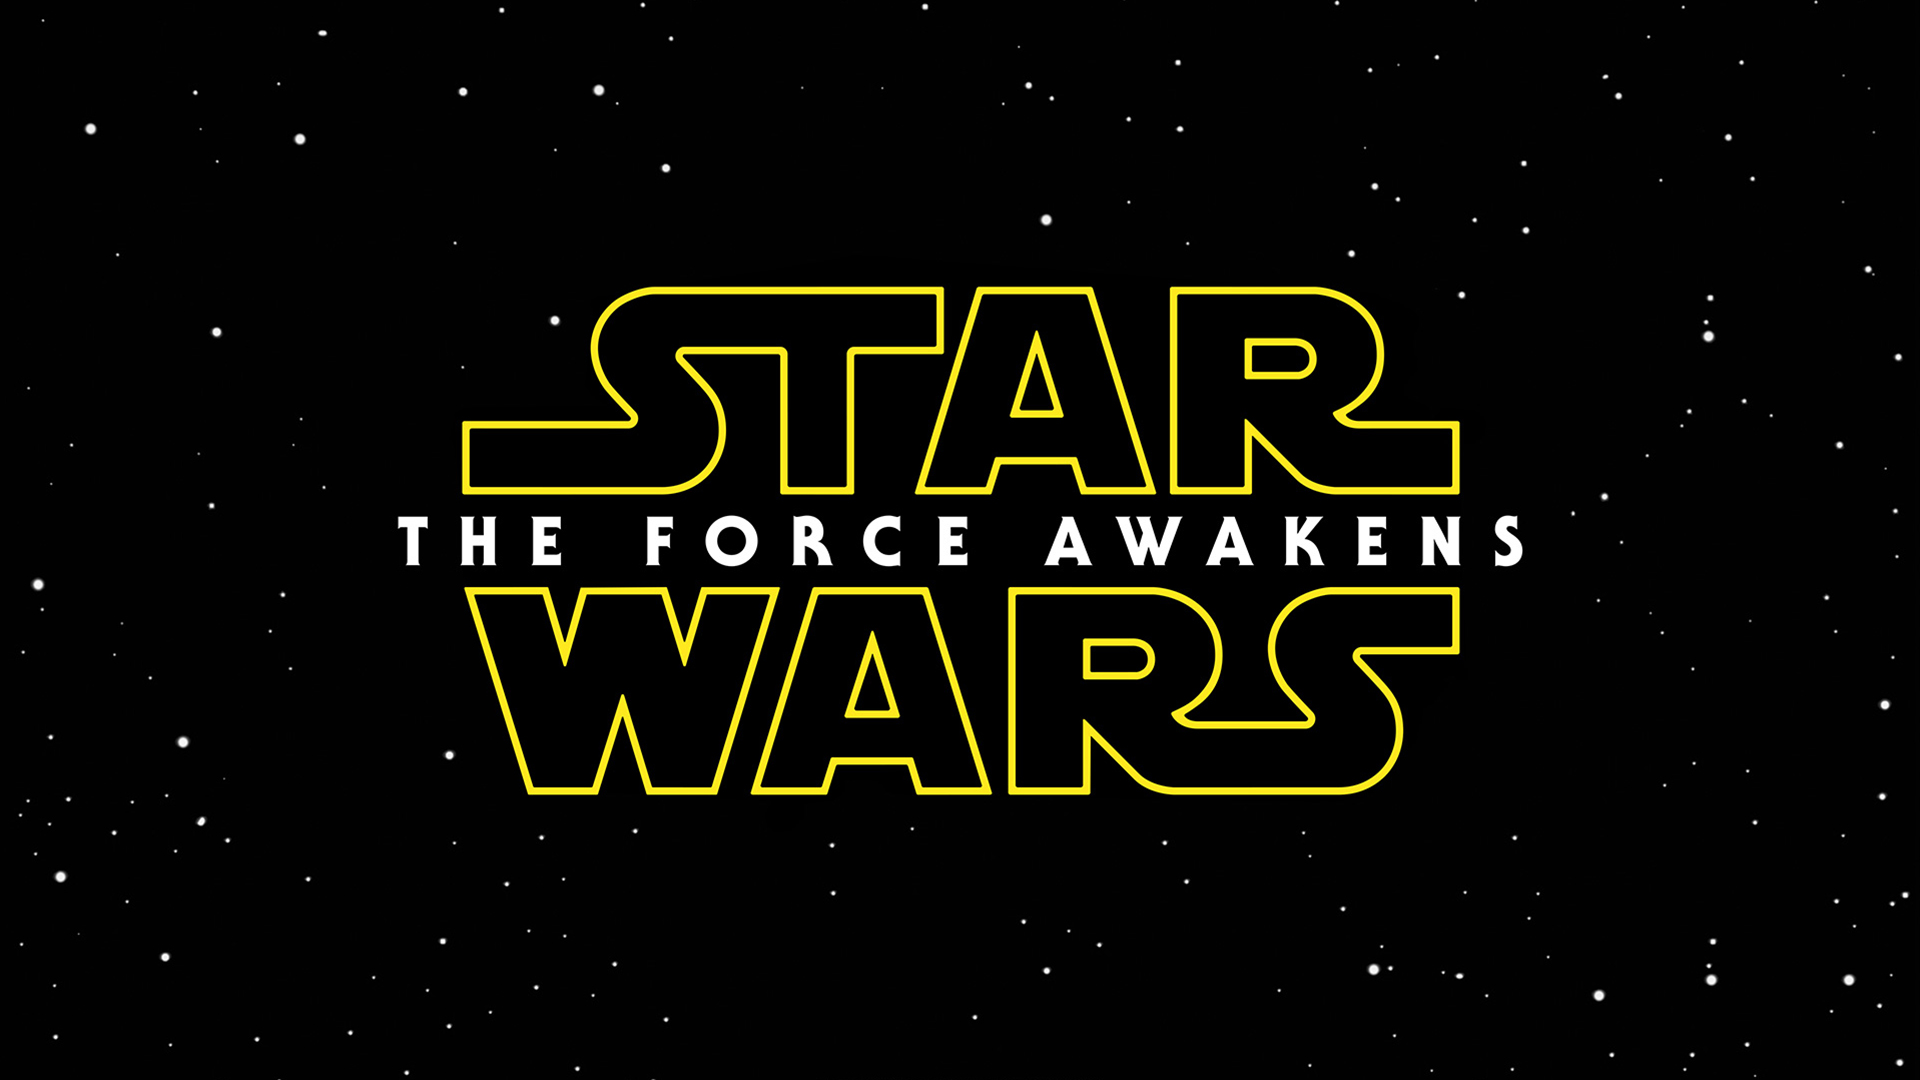 Star Wars The Force Awakens Hd Wallpapers